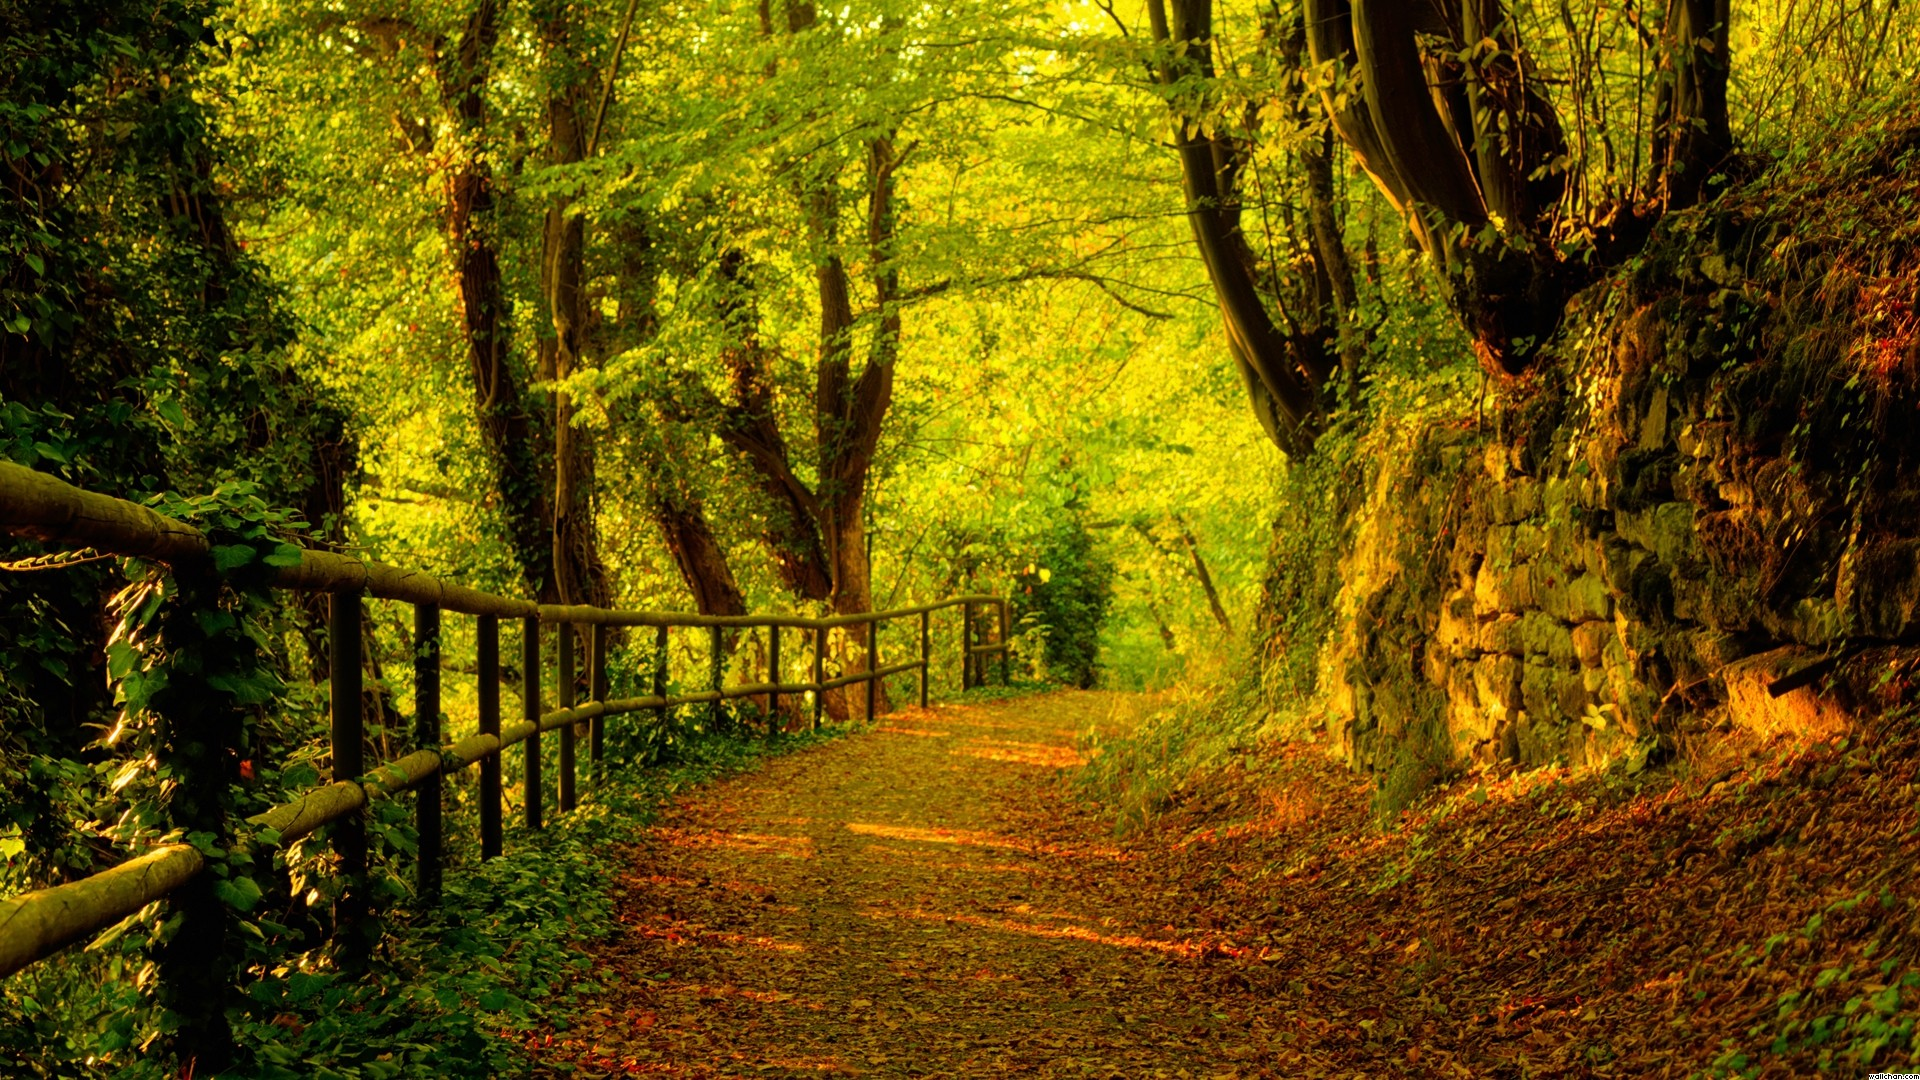 Most Inspiring Wallpaper High Quality Forest - Forest-Pictures-Wallpapers-013  Collection_525963.jpg